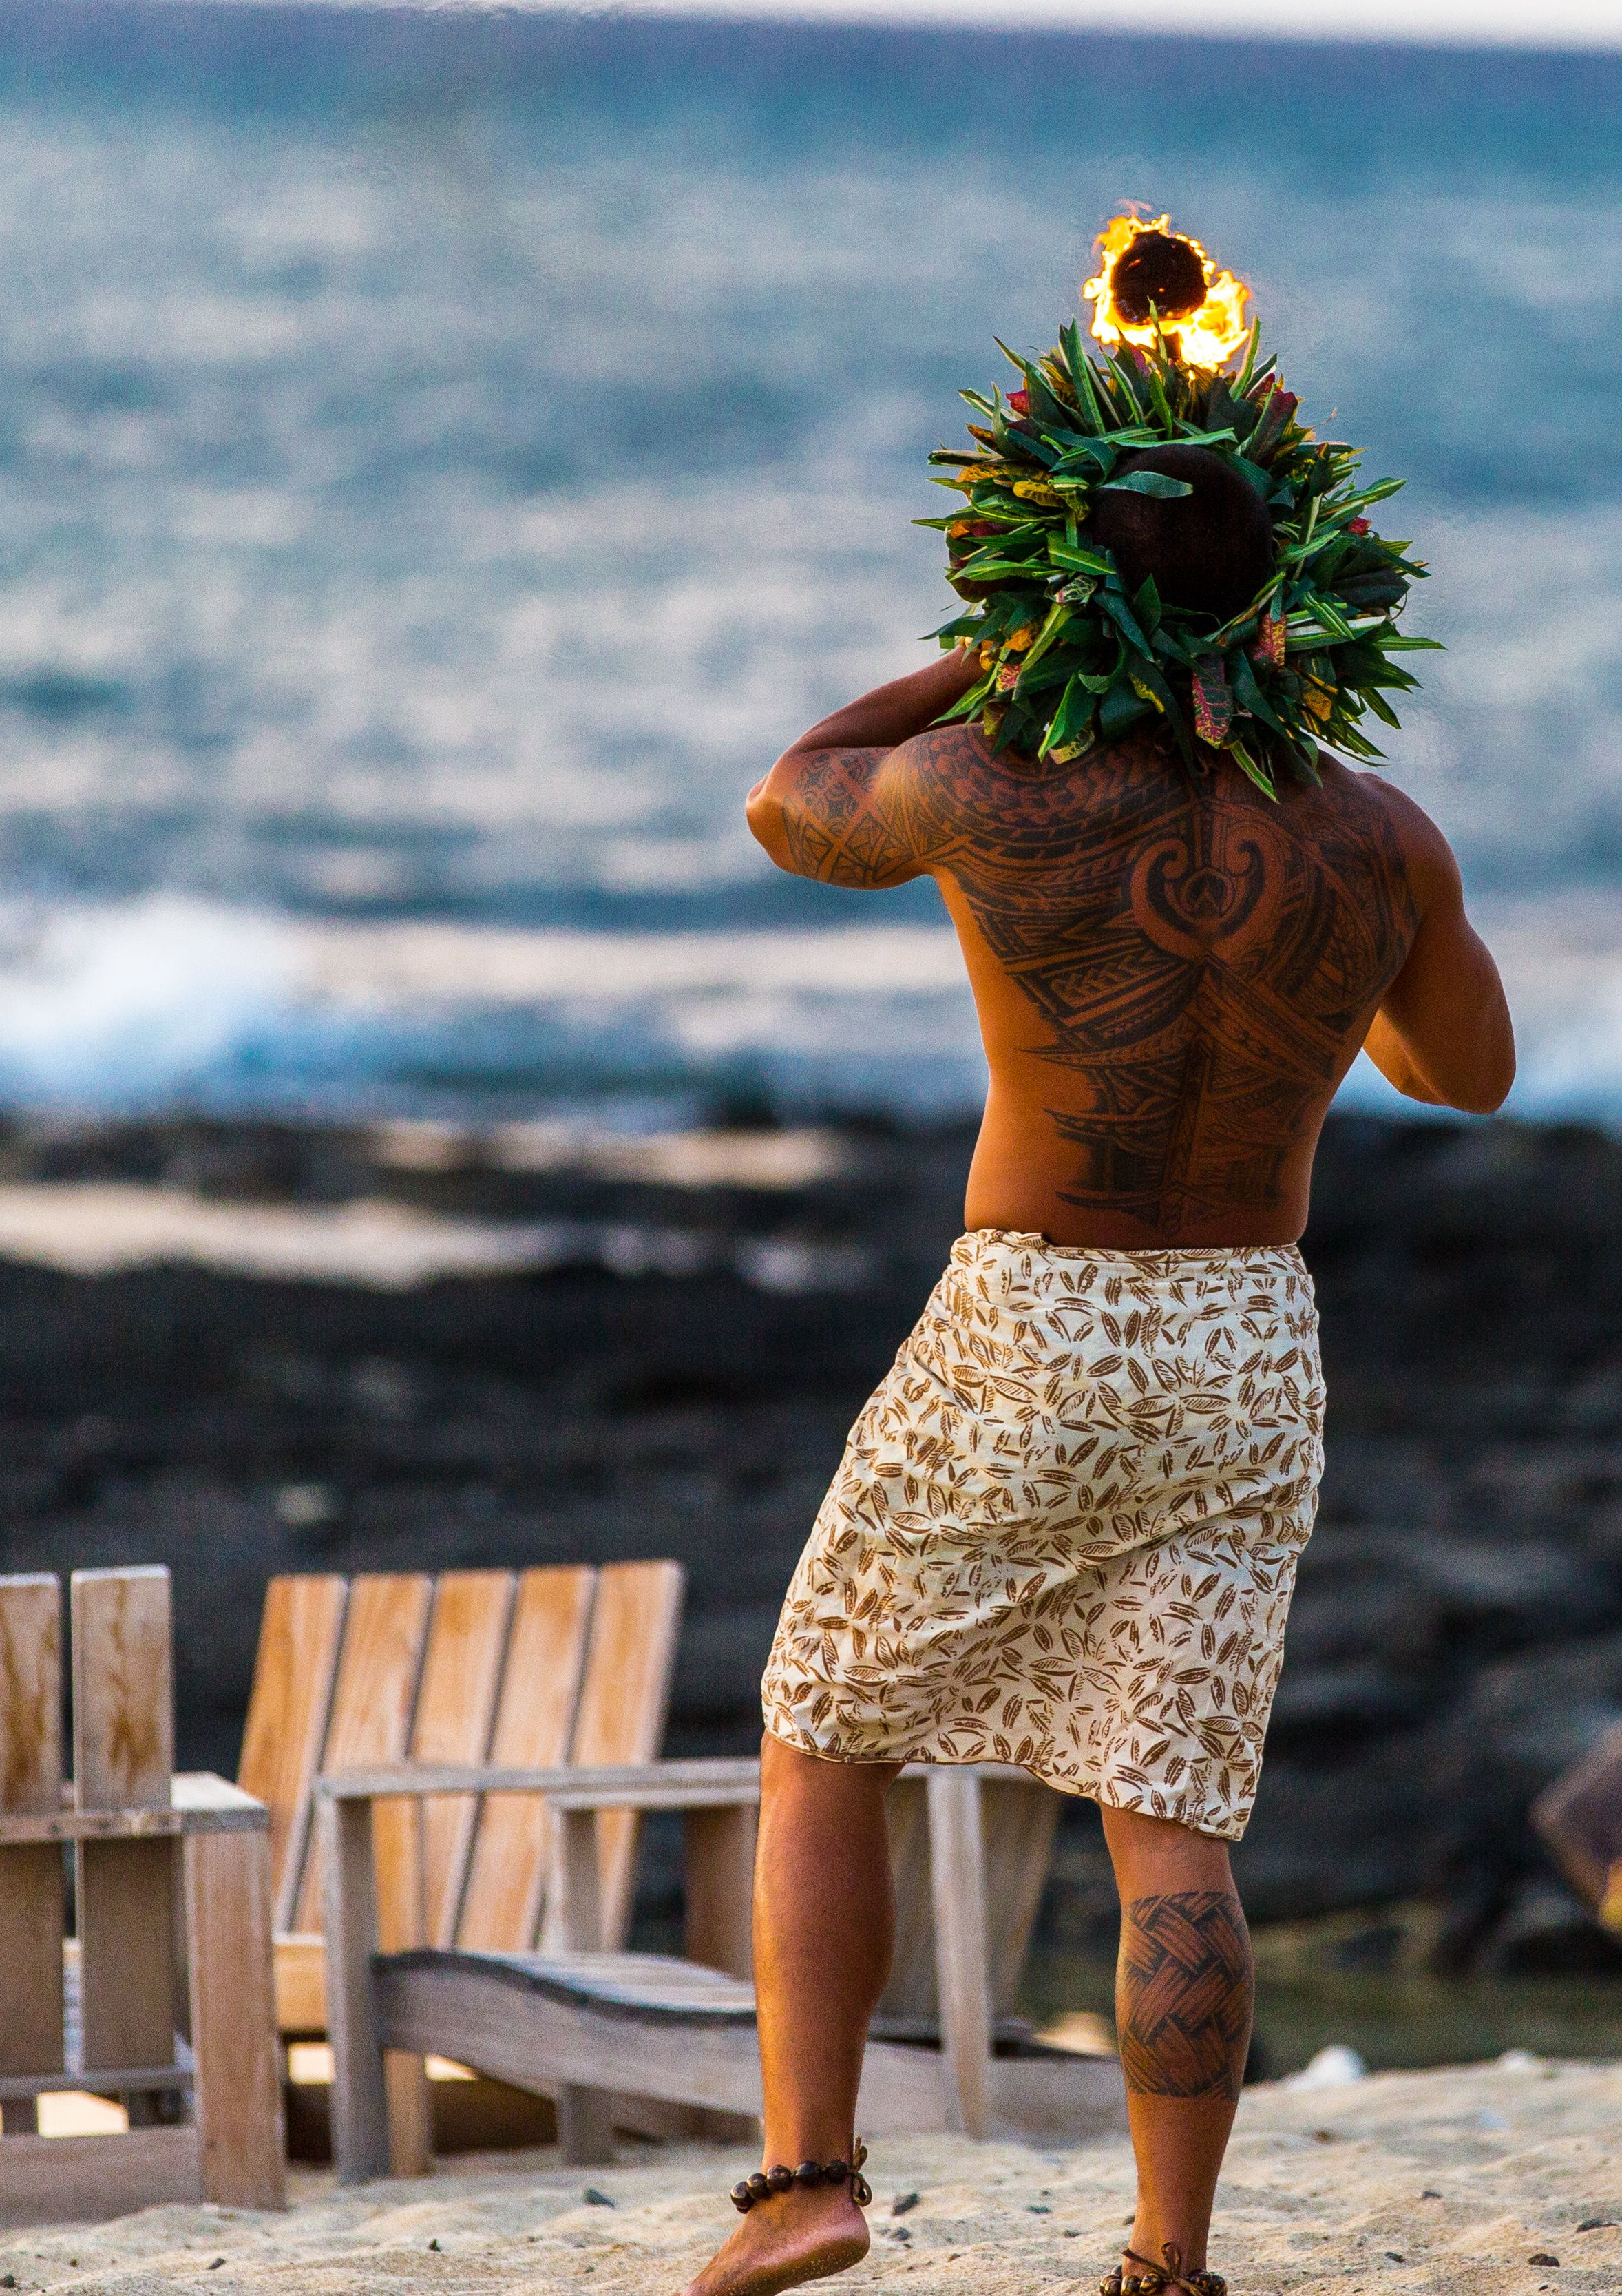 The nightly tradition continues! Say goodbye to another day and welcome the evening with the lighting of the torches and the blowing of the Pū (conch).